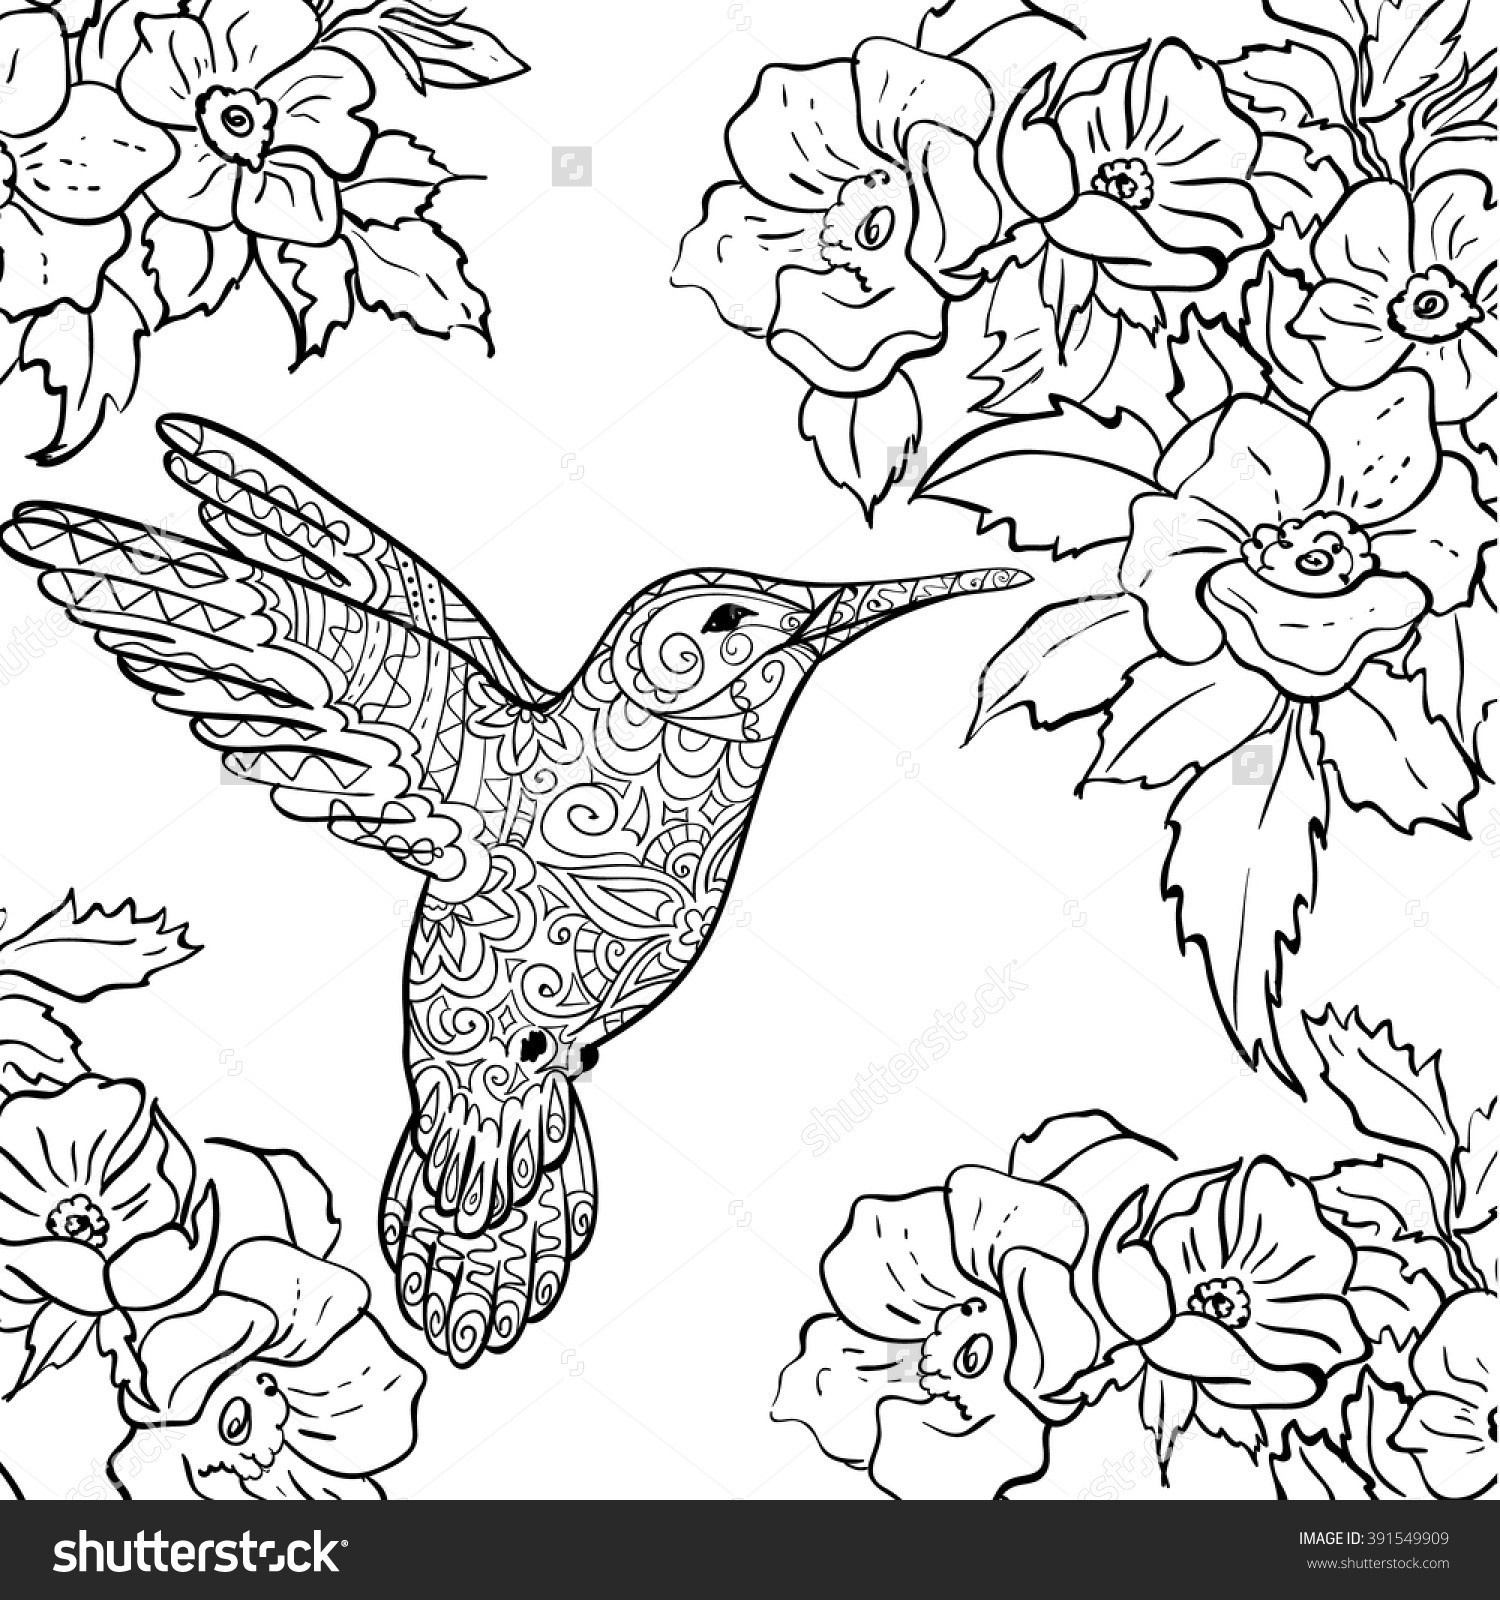 Hummingbird Coloring Pages For Adults At Getdrawings